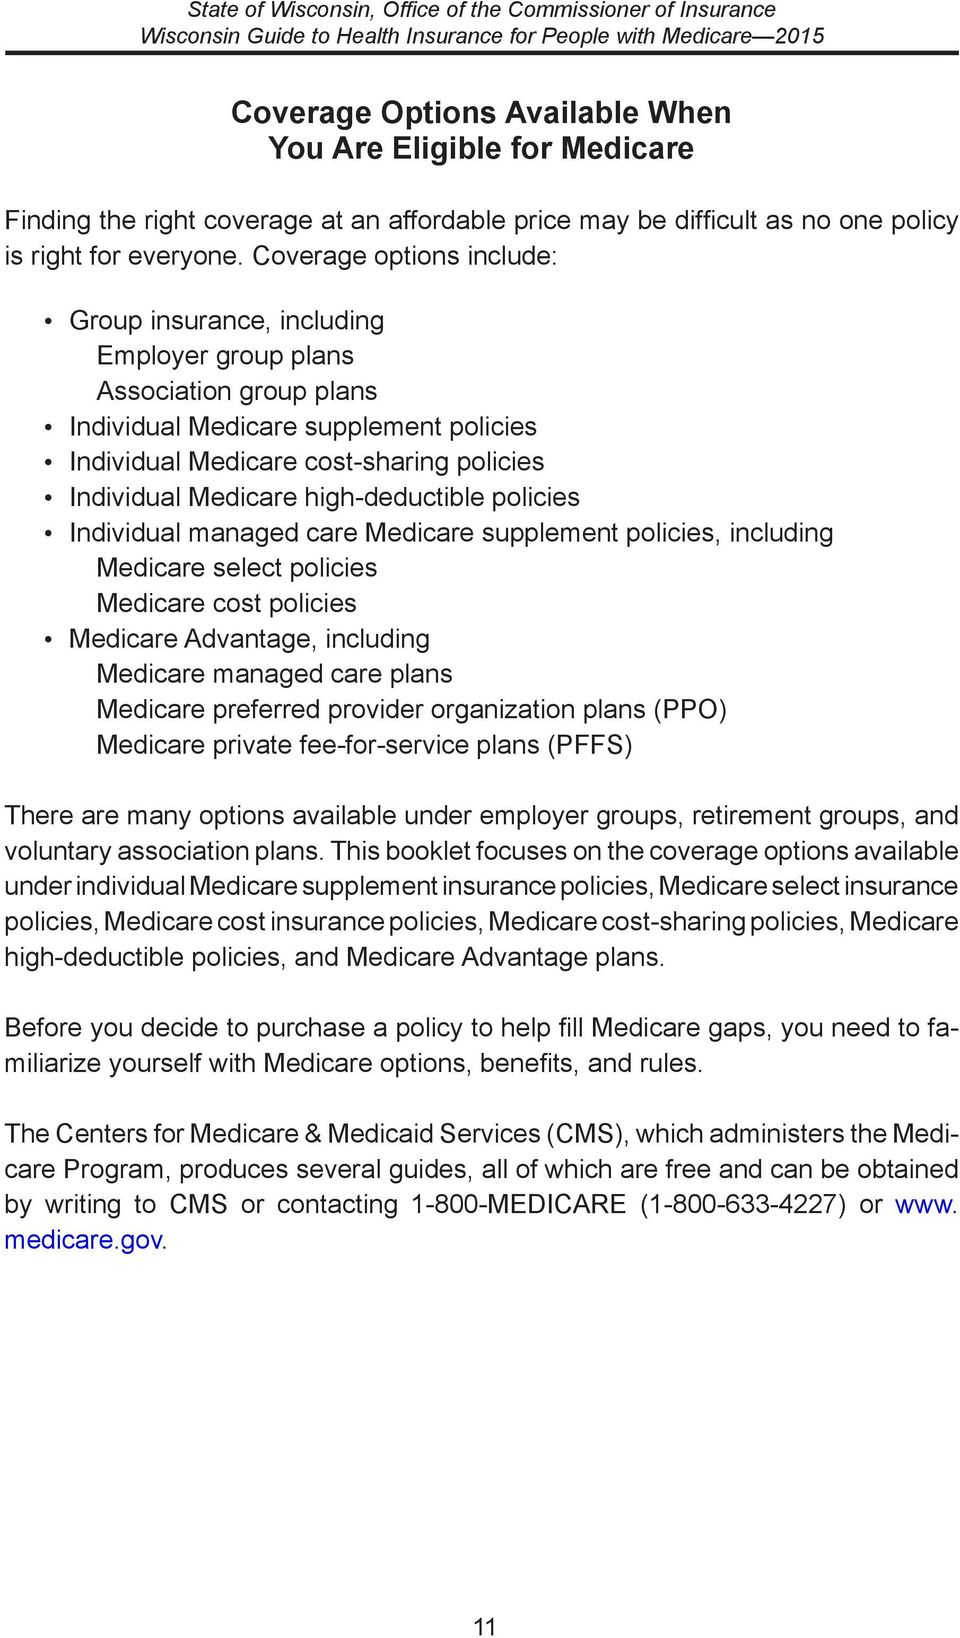 high-deductible policies Individual managed care Medicare supplement policies, including Medicare select policies Medicare cost policies Medicare Advantage, including Medicare managed care plans